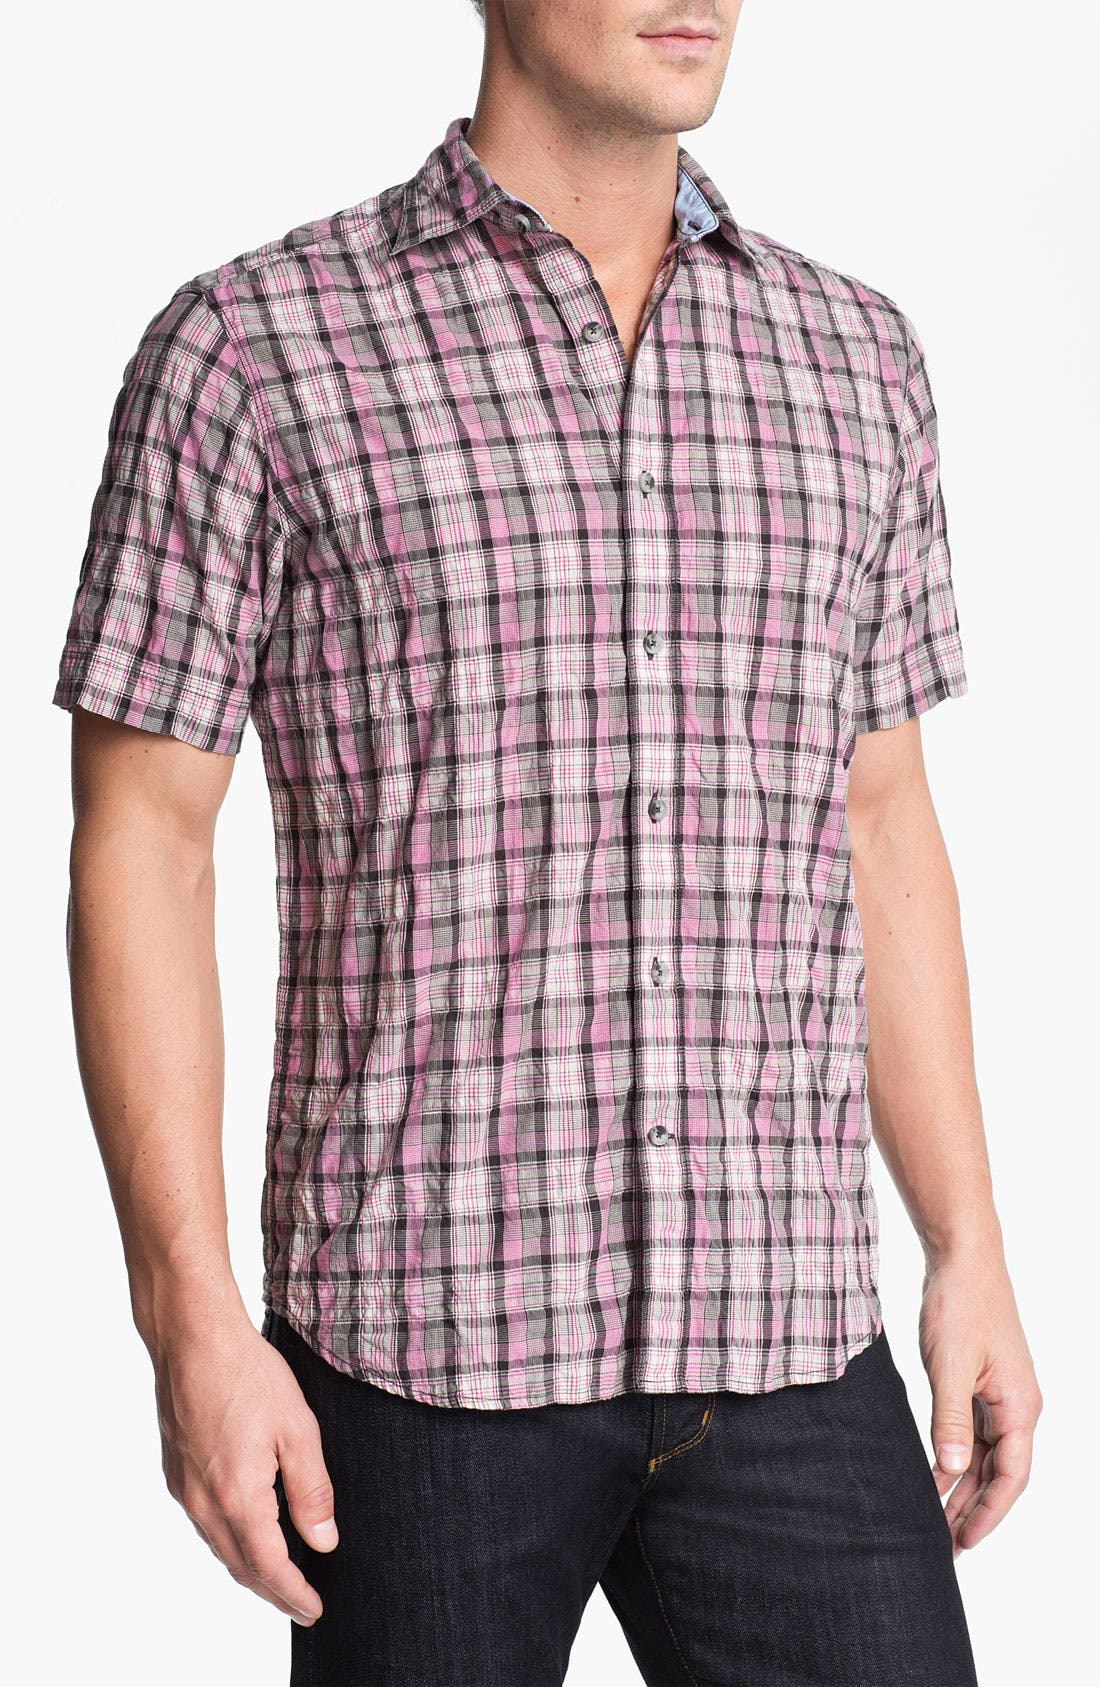 Alternate Image 1 Selected - James Campbell 'Moclips' Plaid Sport Shirt